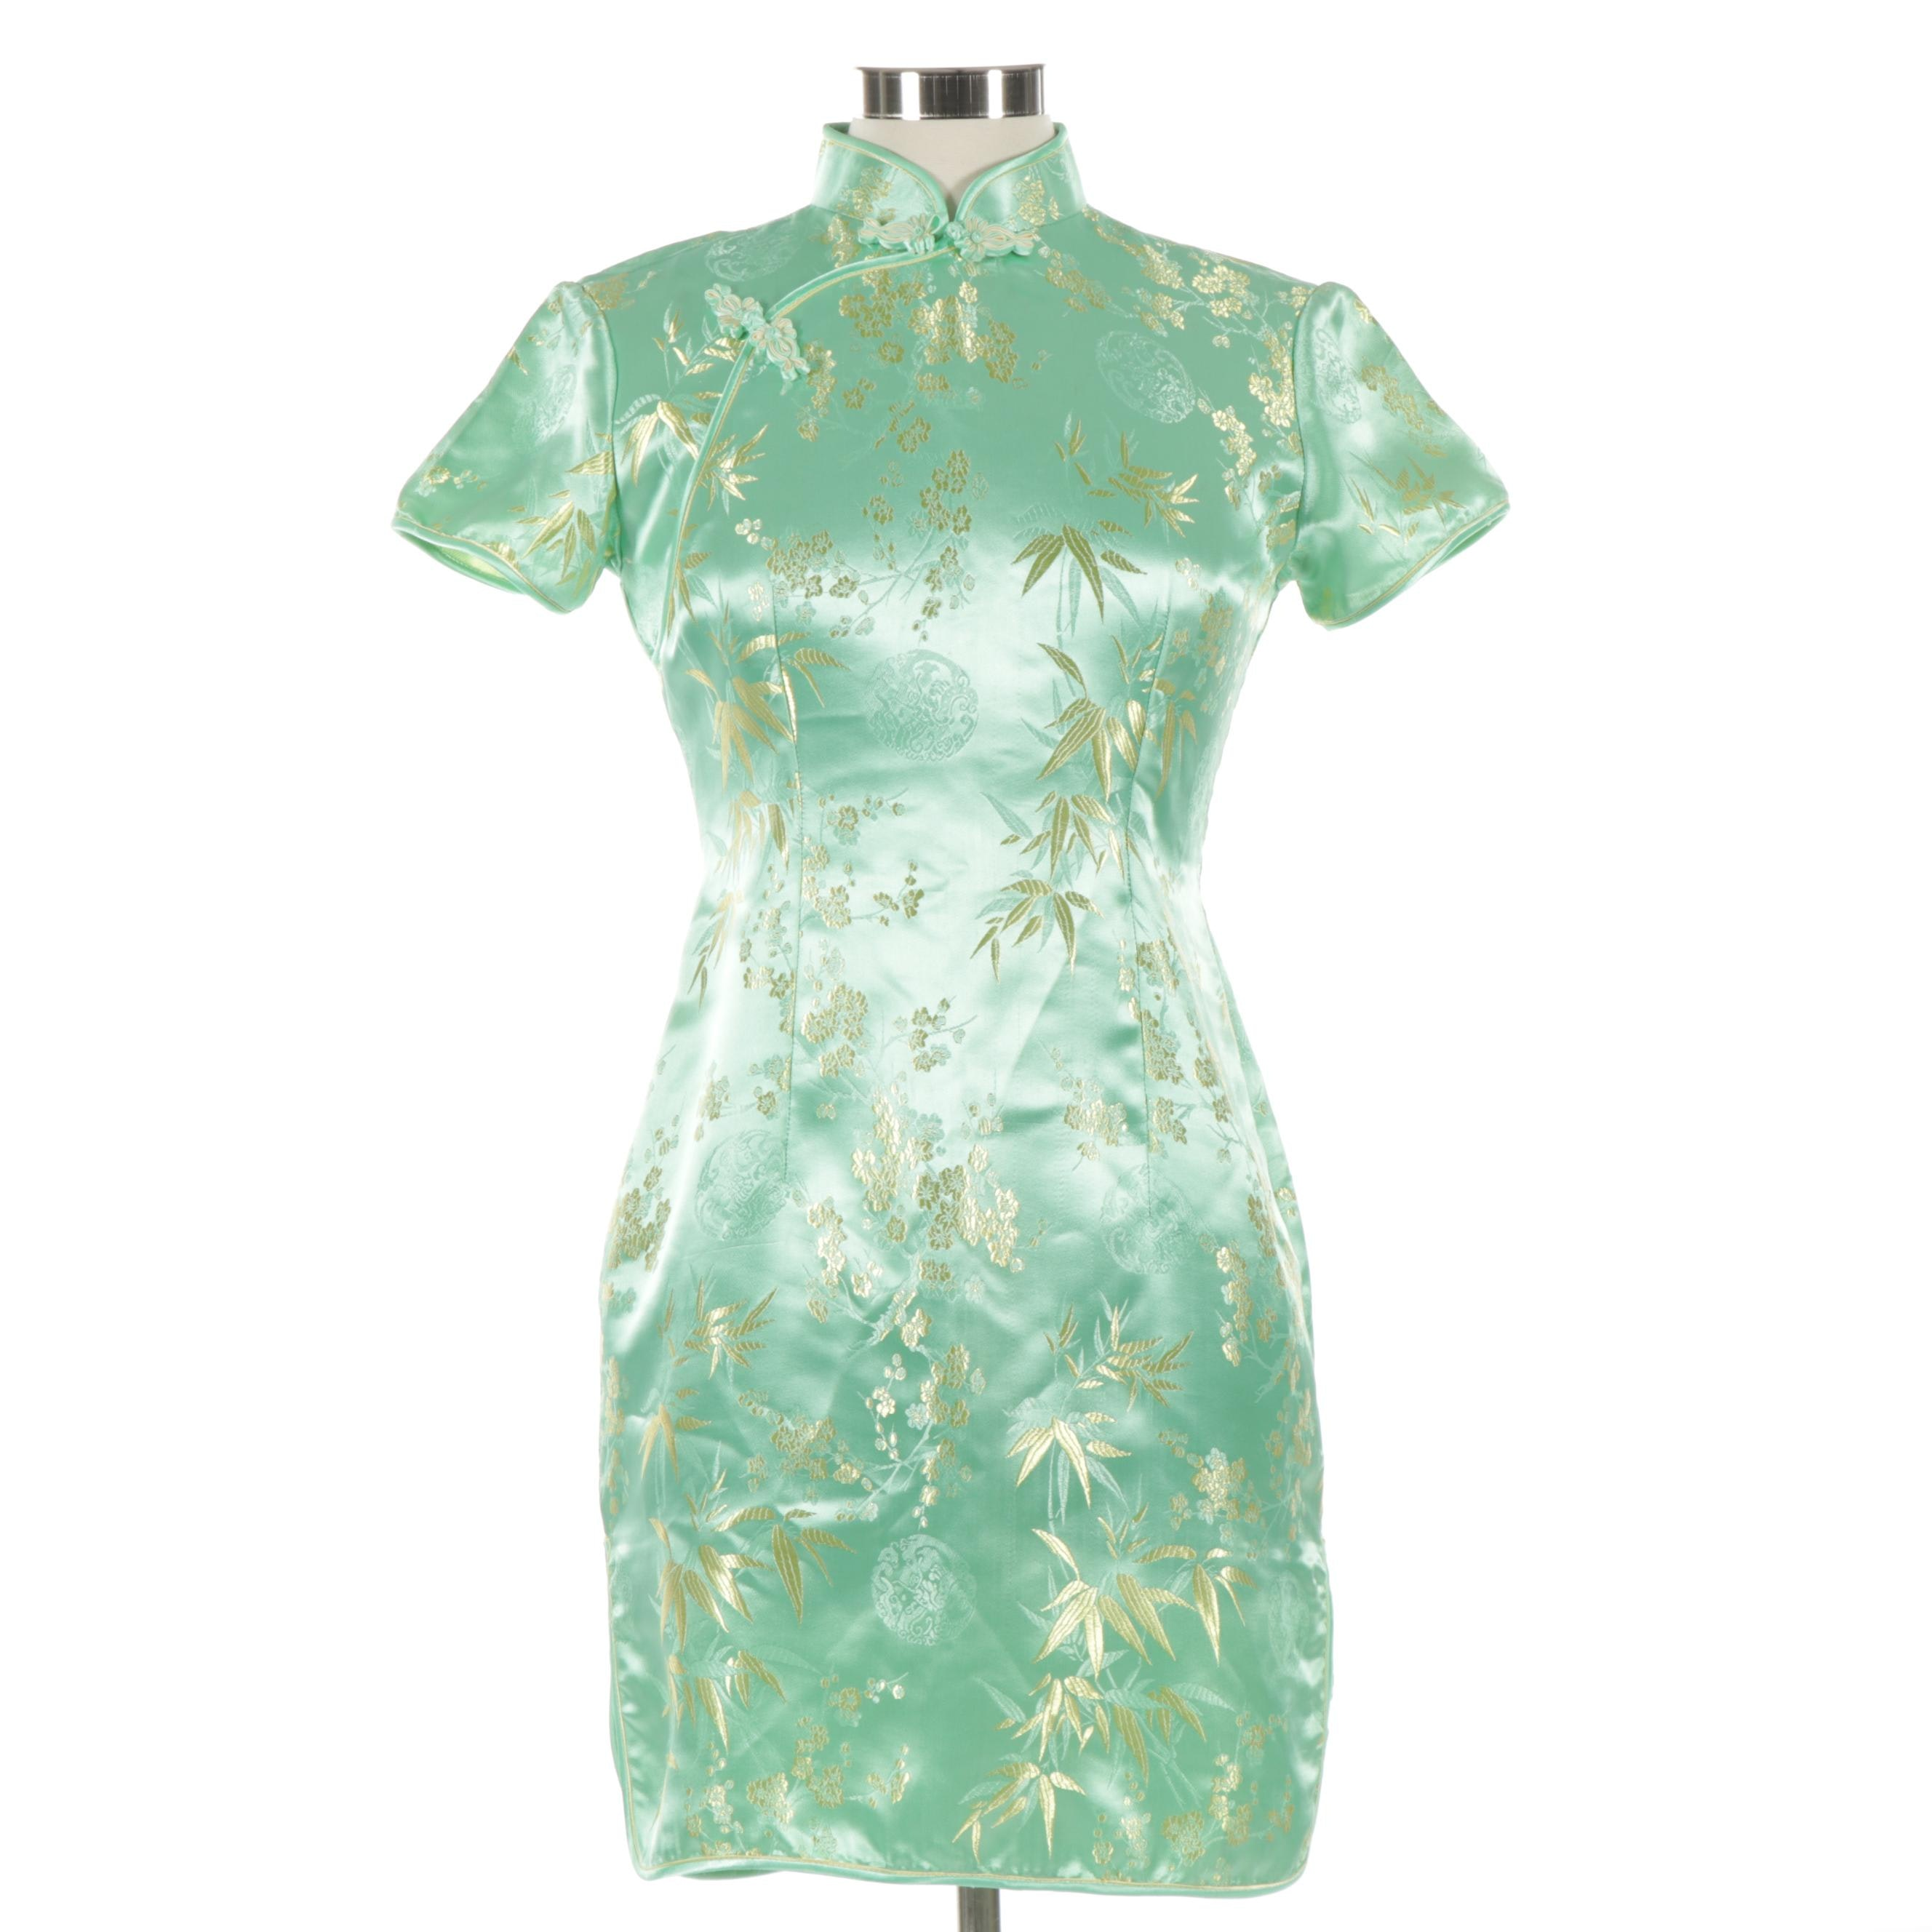 Women's Cheongsam Dress